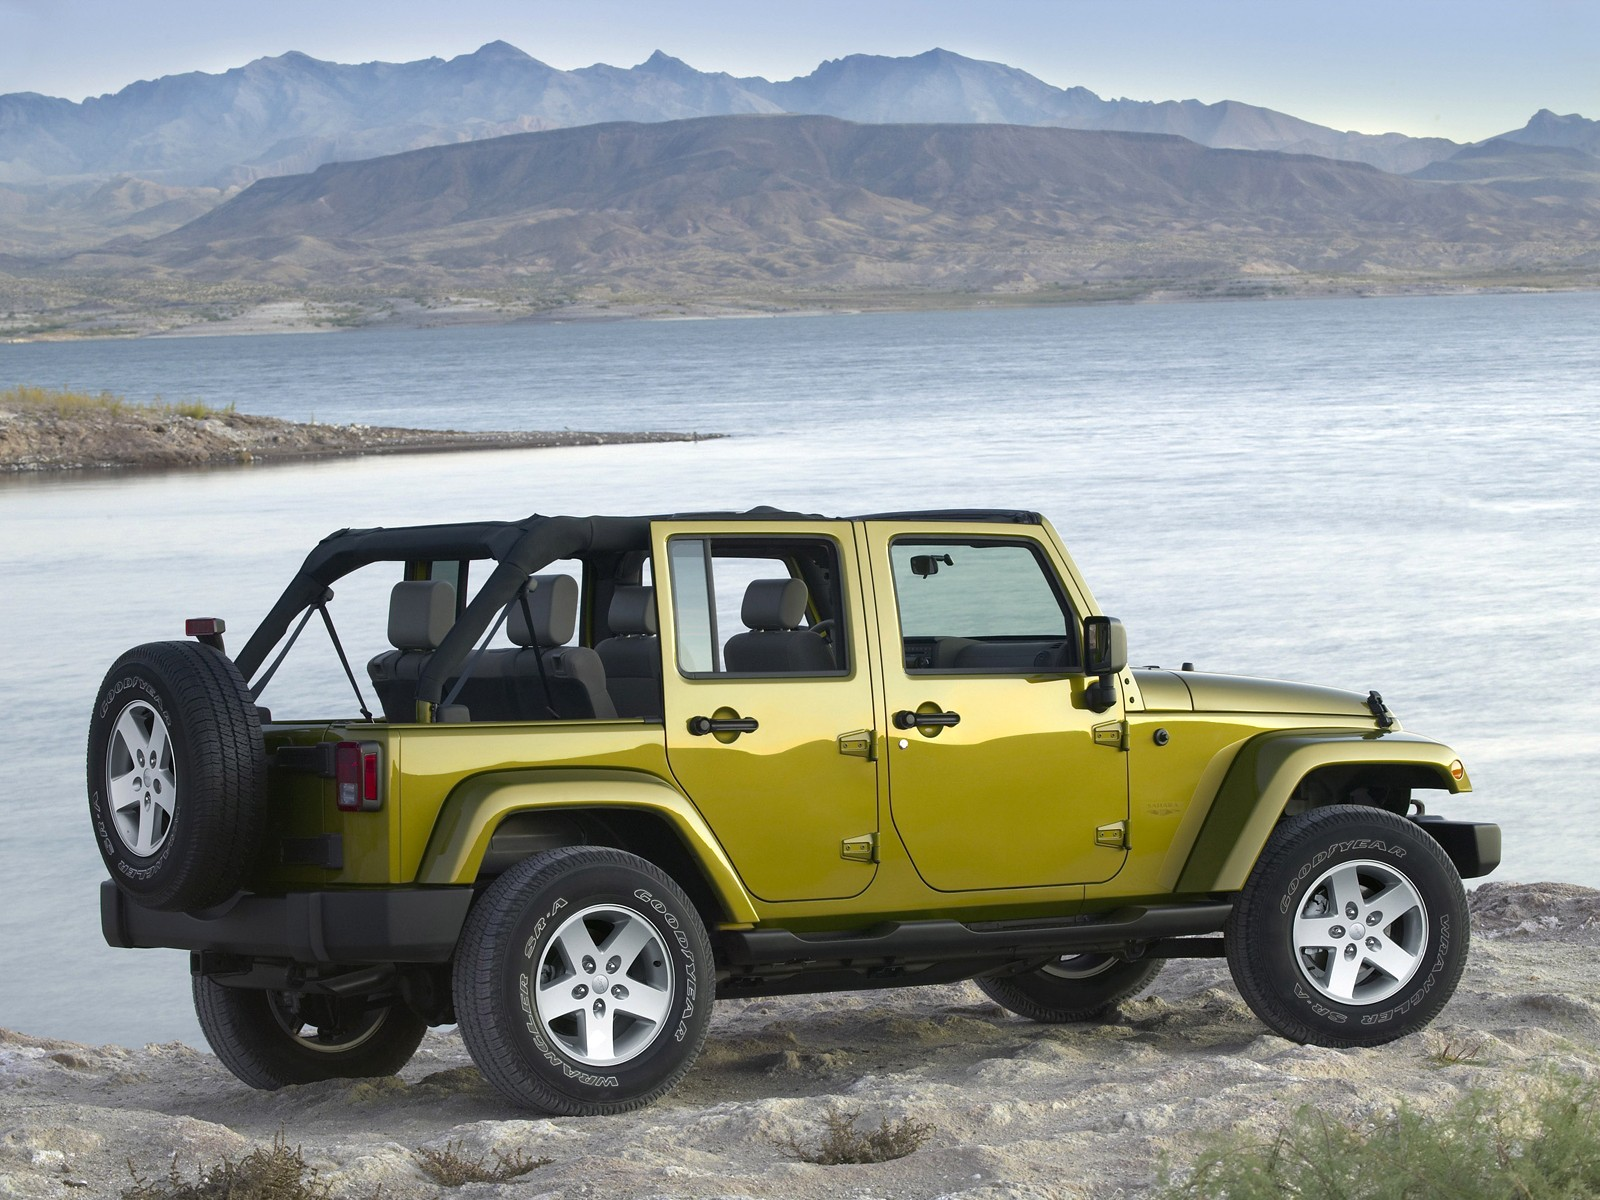 Free Download Image Of Jeep Wrangler Unlimited Rear Side View